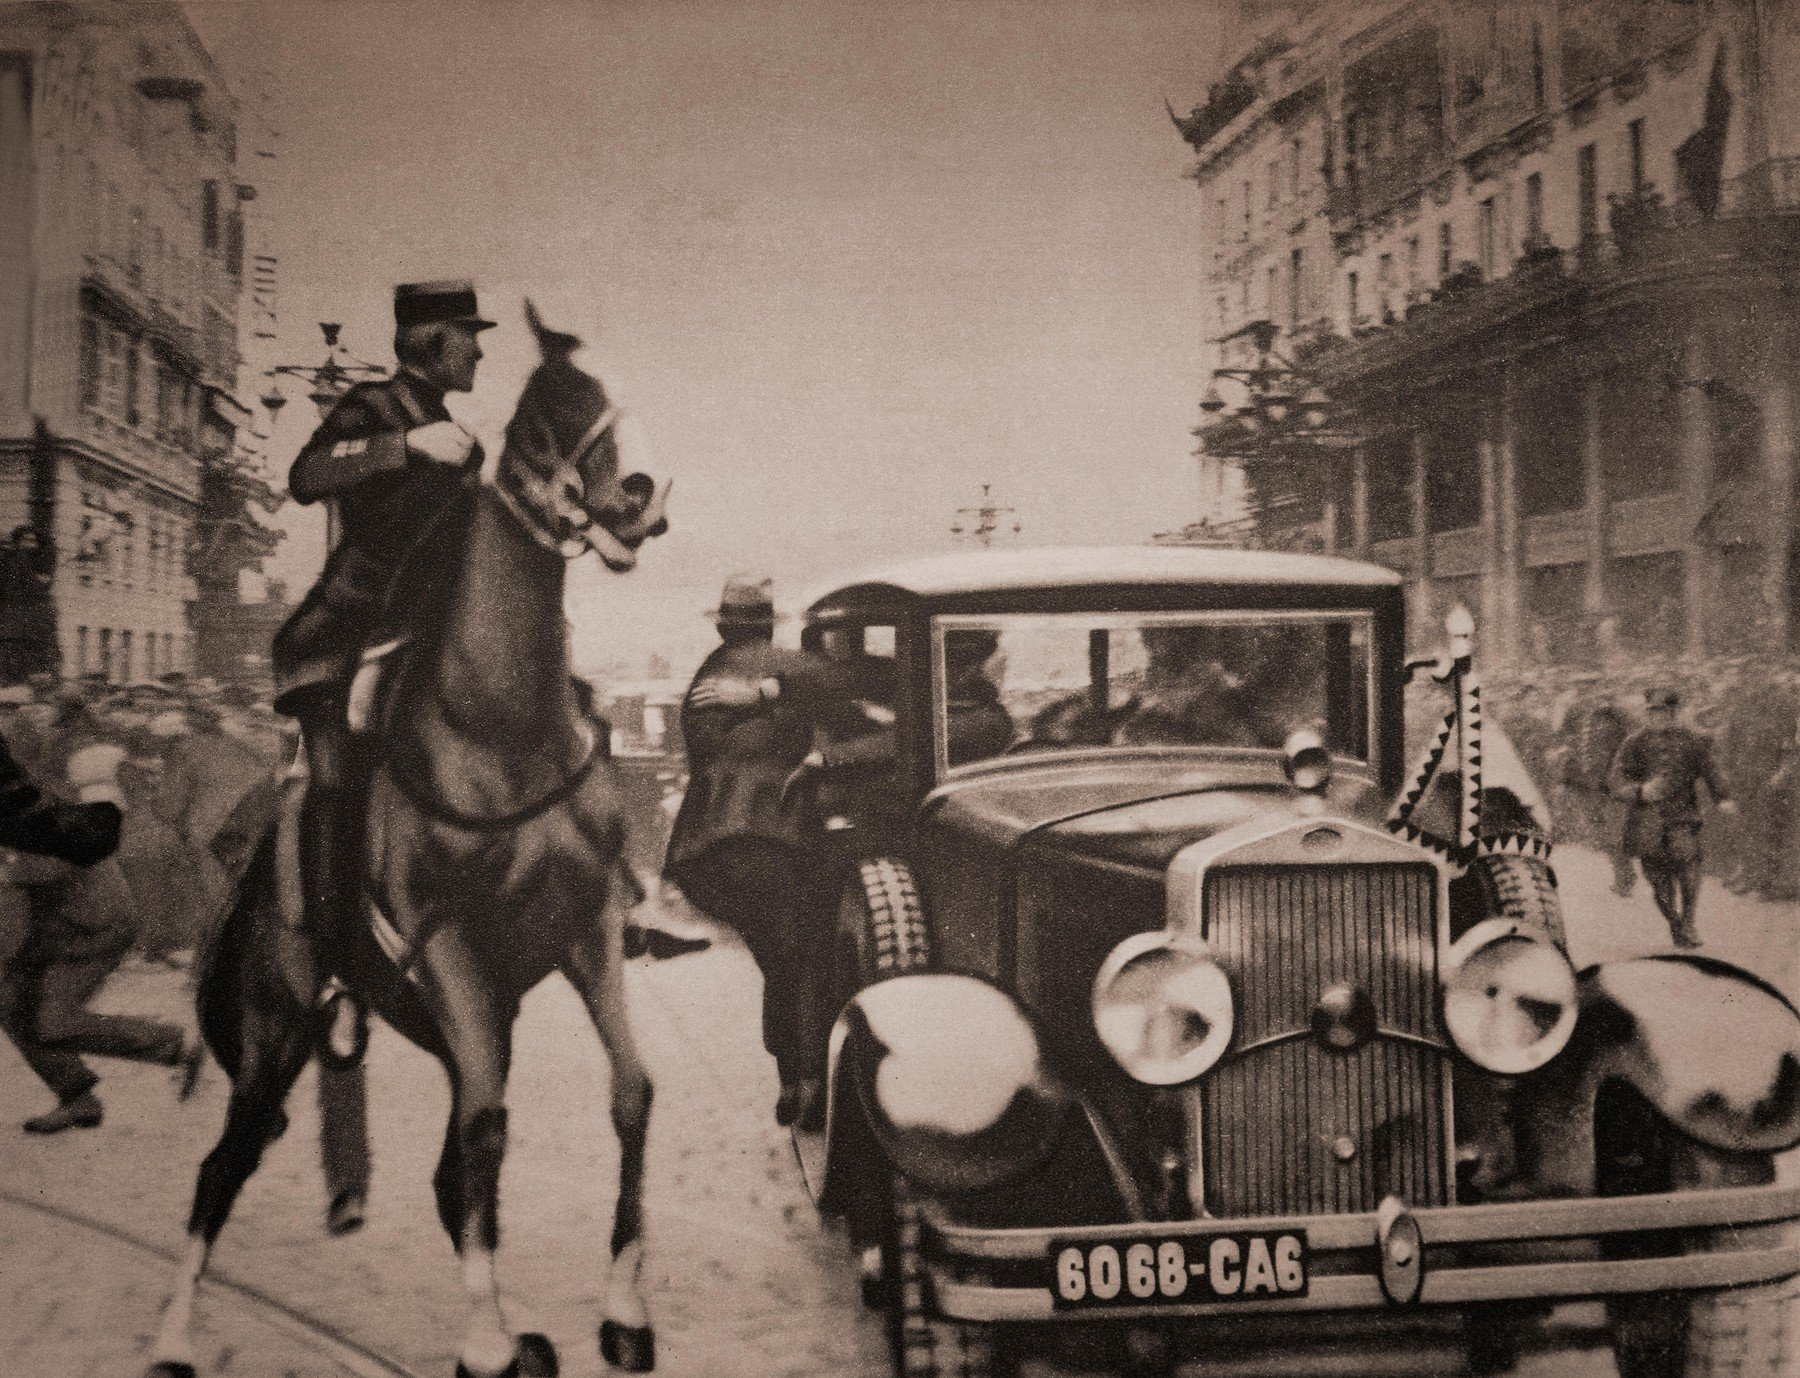 The assassination of Alexander I  on 9 October 1934. Also known as Alexander the Unifier, heserved as a prince regent of the Kingdom of Serbia from 1914 and later became King of Yugoslavia from 1921 to 1934 (prior to 1929 the state was known as the Kingdom of Serbs, Croats and Slovenes). He was assassinated in Marseille, France while being slowly driven through the streets along with French Foreign Minister Louis Barthou. The Bulgarian terrorist Vlado Chernozemski, of the pro-Bulgarian Internal Macedonian Revolutionary Organization (IMRO), stepped from the street and shot the King twice, and the chauffeur, with a Mauser C96 semiautomatic pistol. Alexander died in the car, slumped backwards in the seat, with his eyes open One of the bullets struck Foreign Minister Barthou in the arm, passing through and fatally severing an artery. He died of blood loss less than an hour later. The IMRO was a political organization that fought for secession of the region of Macedonia and becoming independent, as some form of second Bulgarian state., Image: 402979996, License: Rights-managed, Restrictions: , Model Release: no, Credit line: Profimedia, Alamy